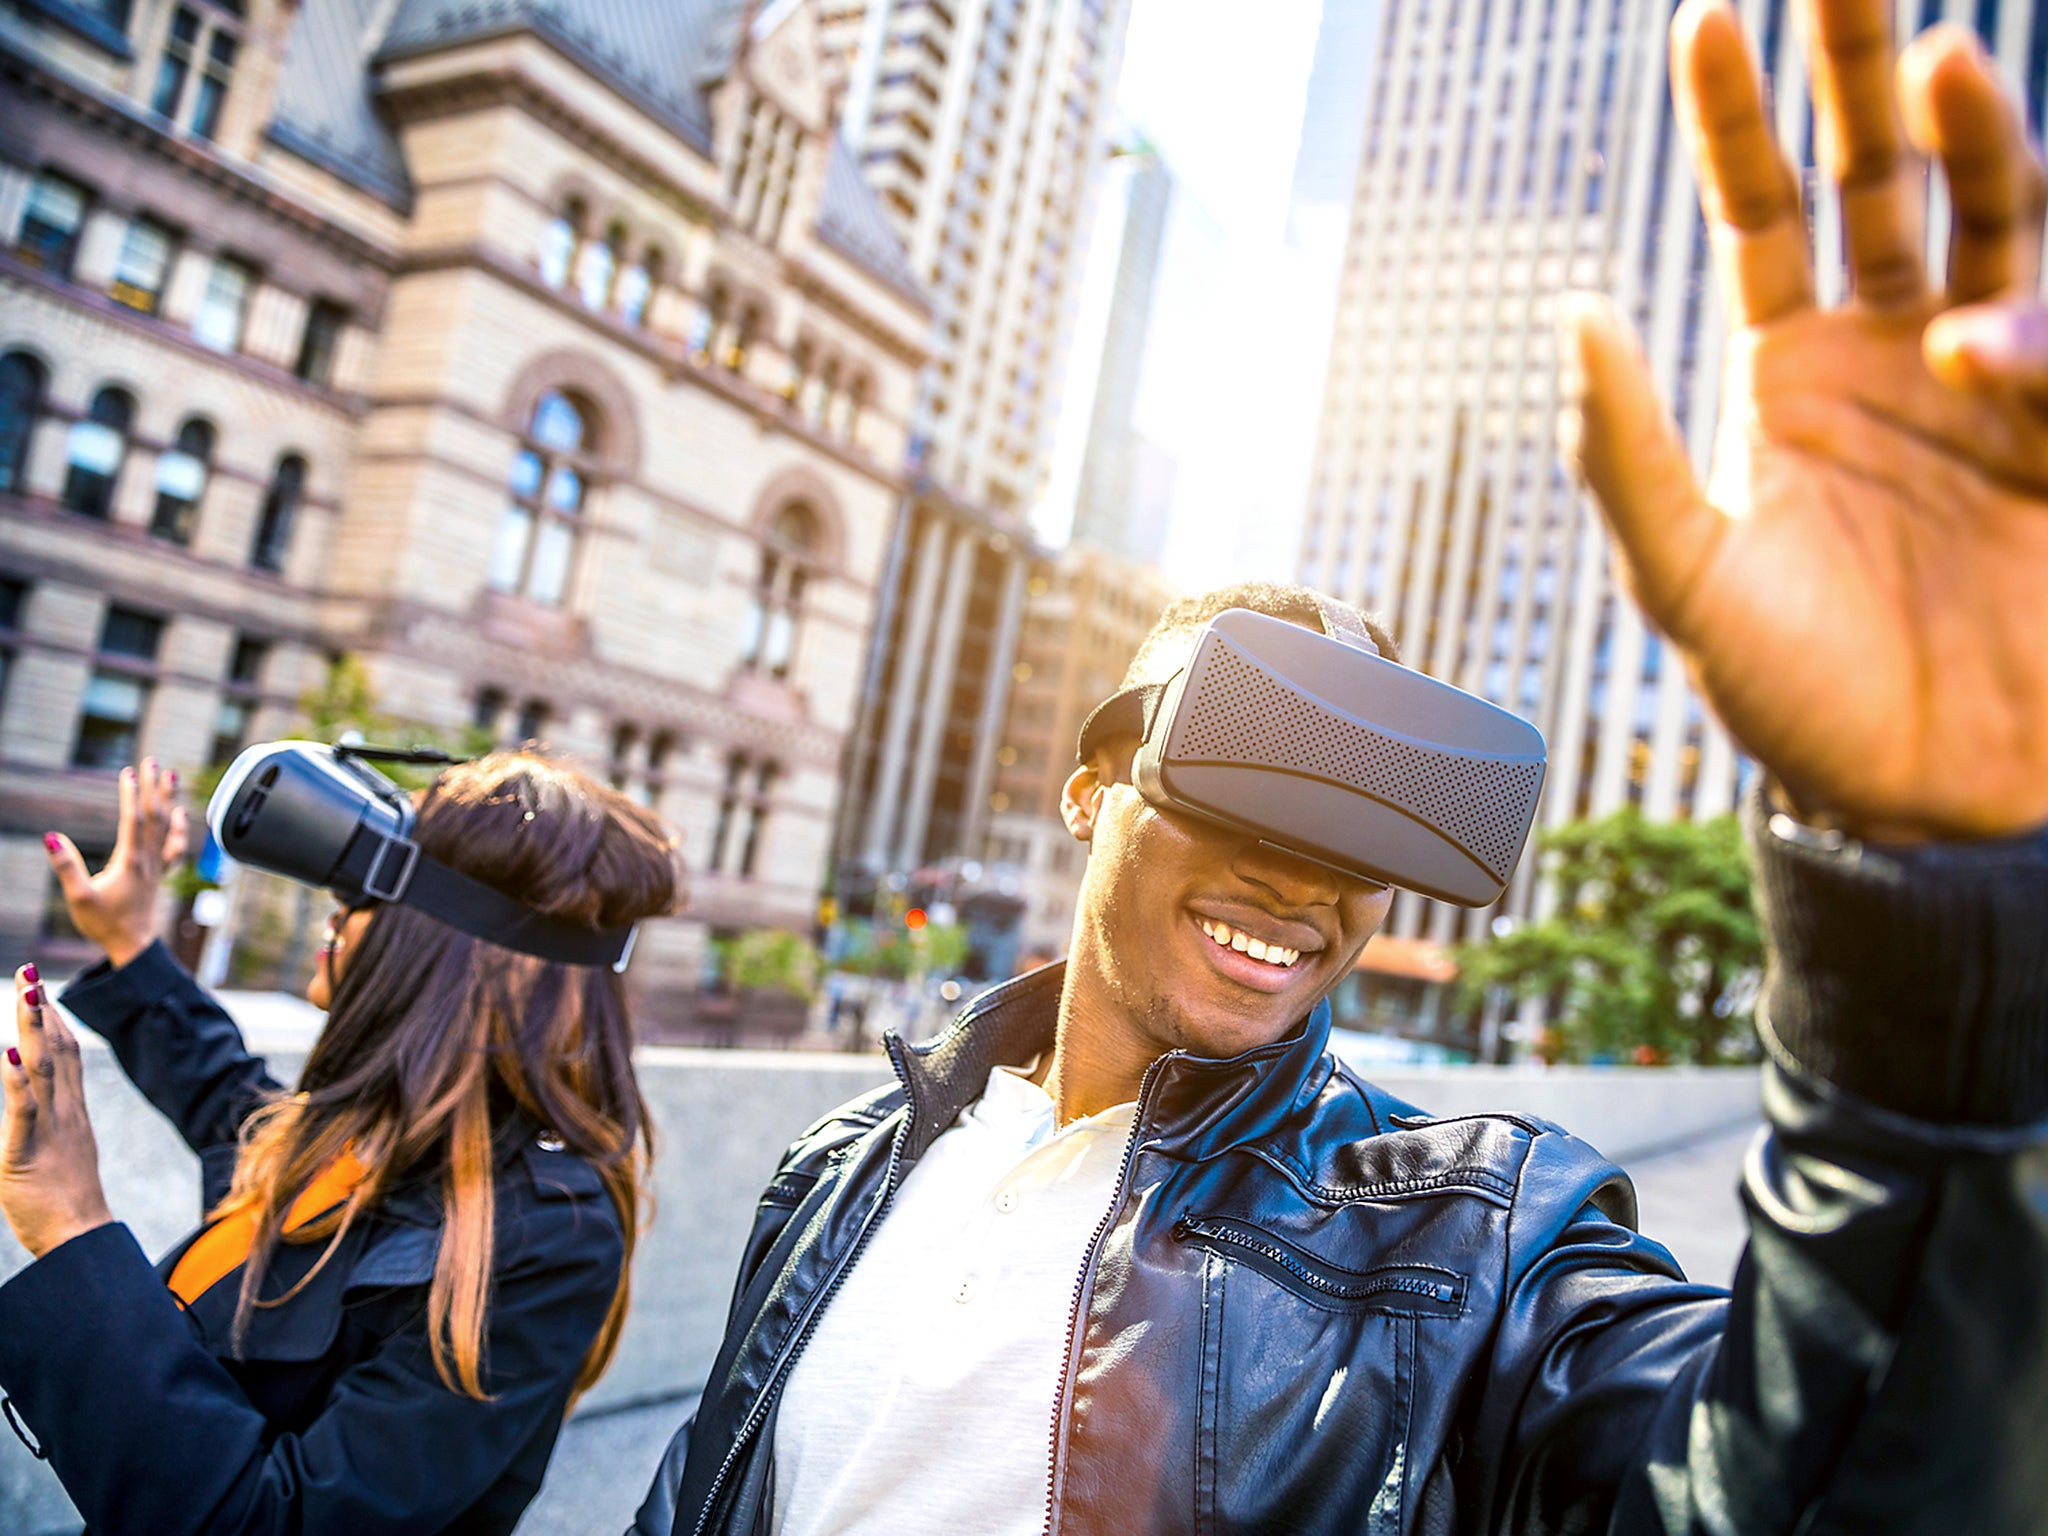 Virtual reality 'to replace high street shopping by 2050'